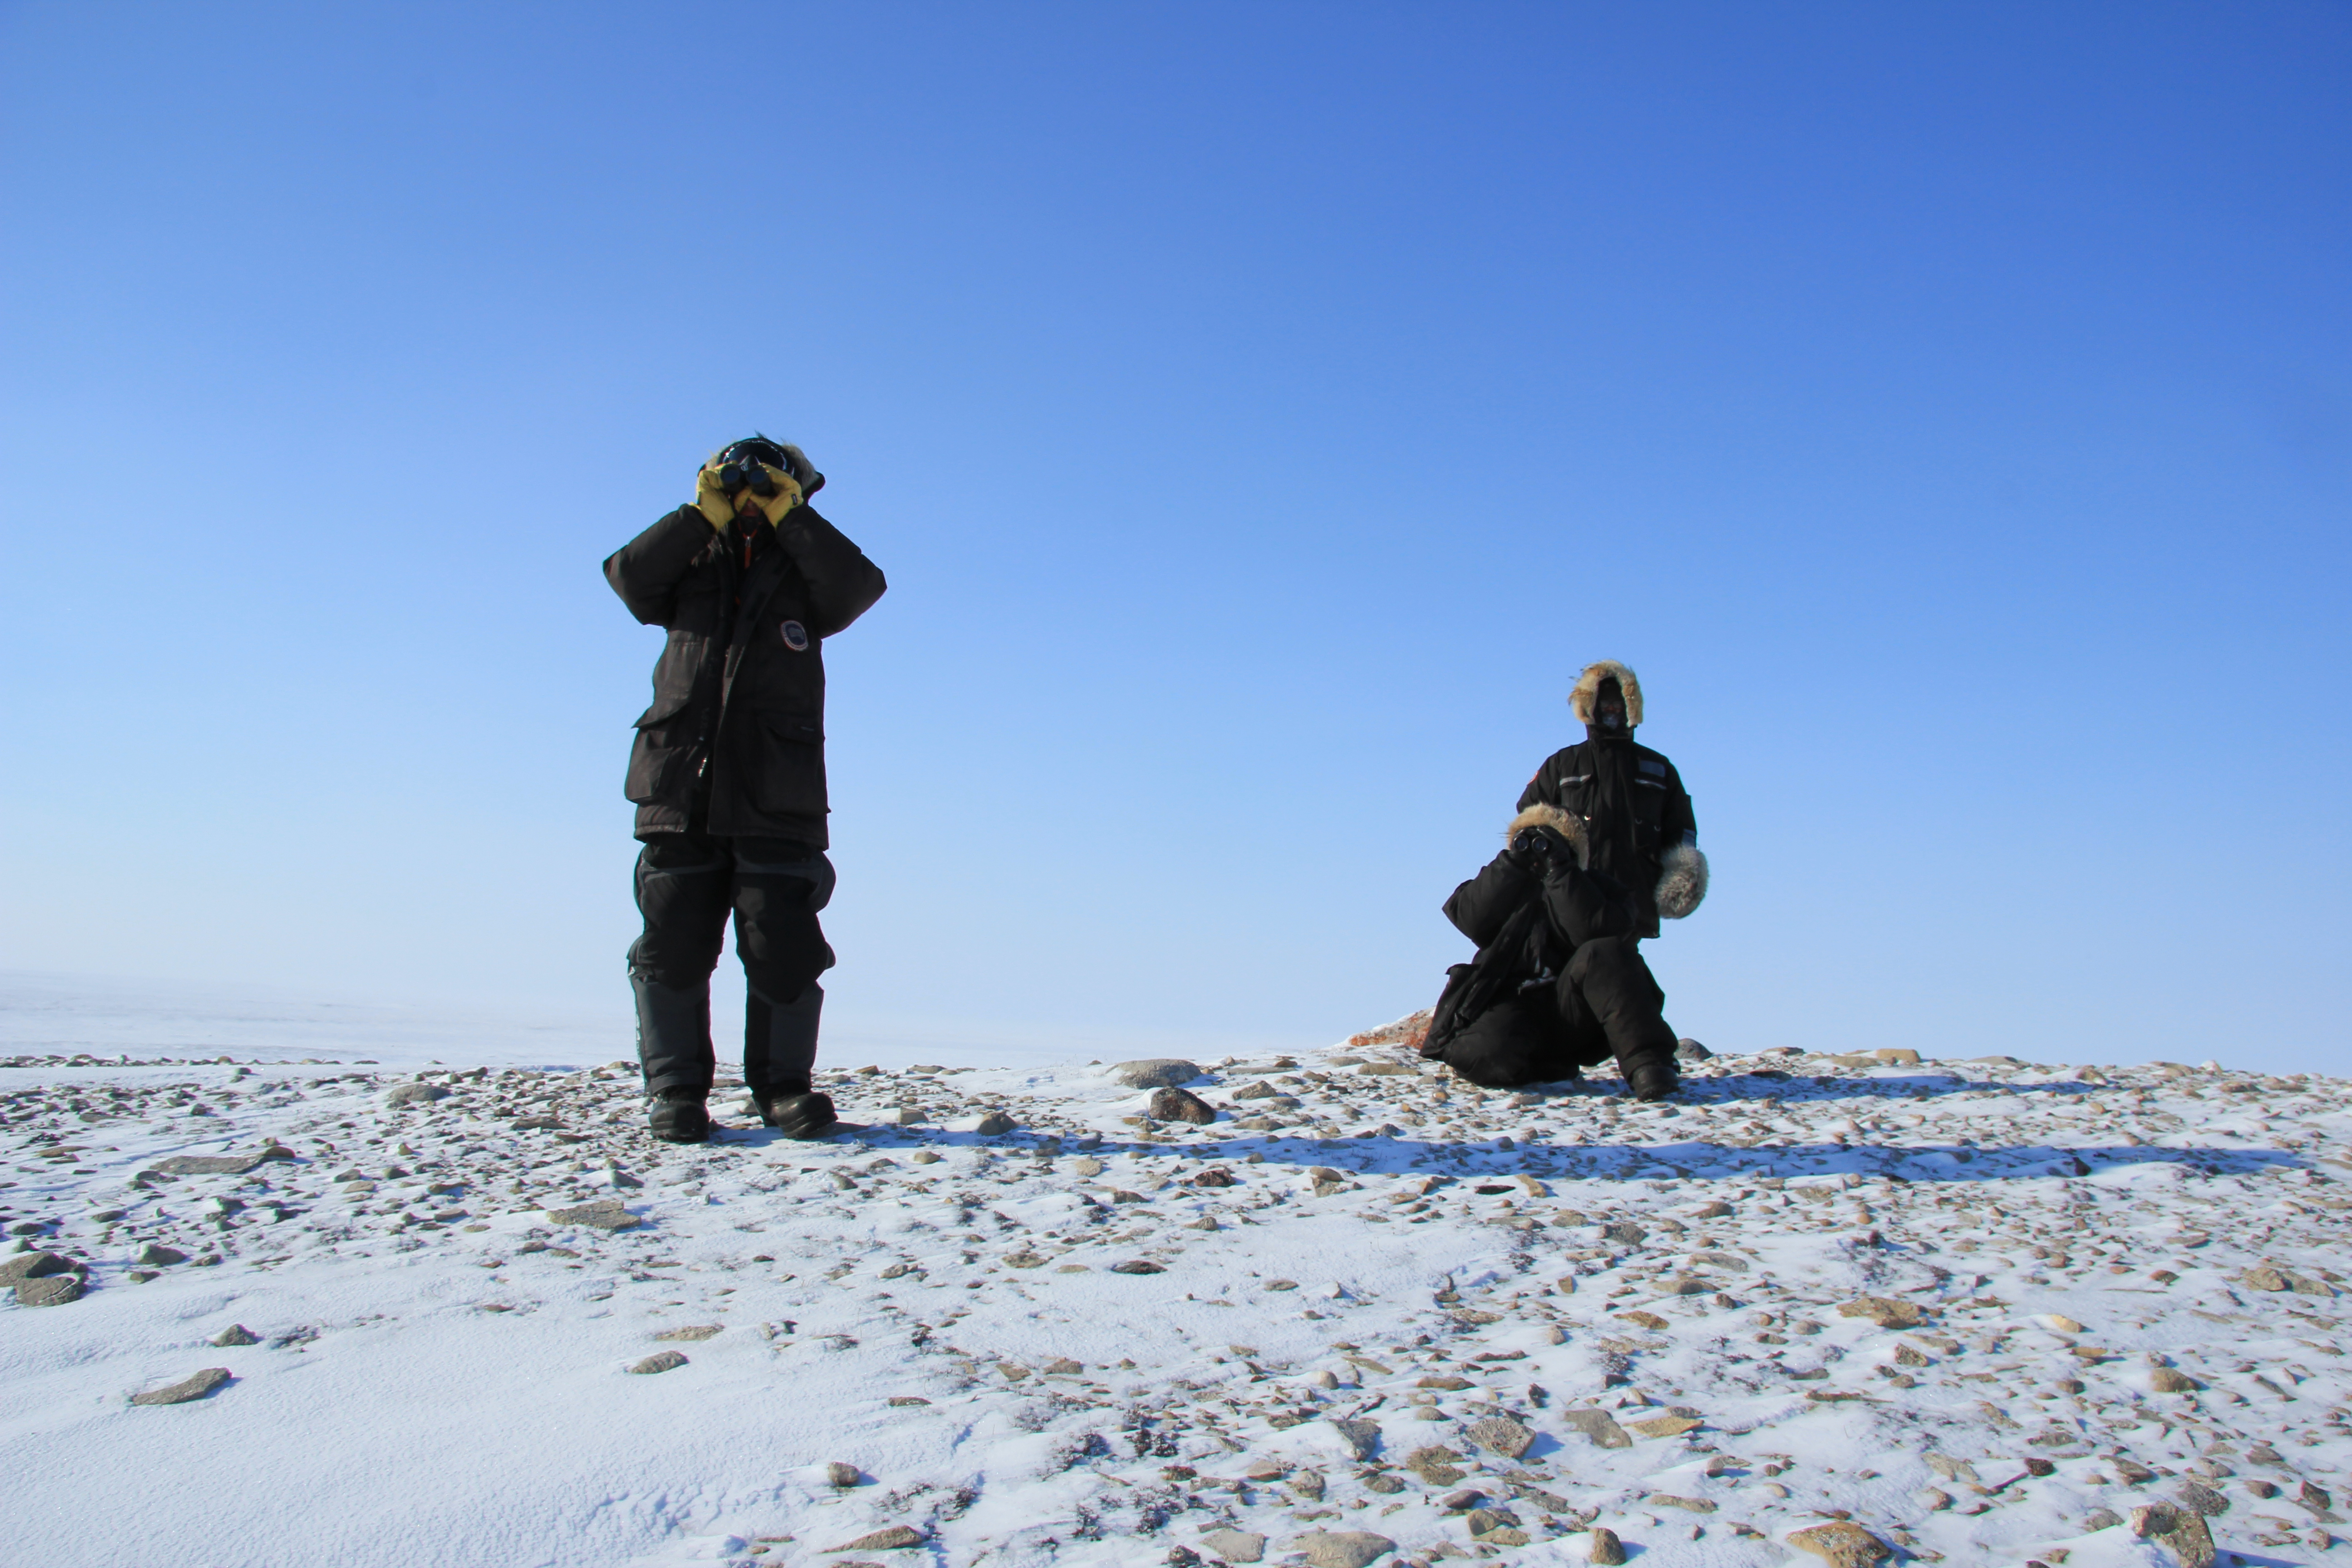 After several hours, Cambridge Bay hunters Ryan Angohiatok (left); Roland Emingak (Right) and Colin Amegainek (sitting) move to high ground, using binoculars to try to spot mukoxen in the distance. (Eilís Quinn/Eye on the Arctic)